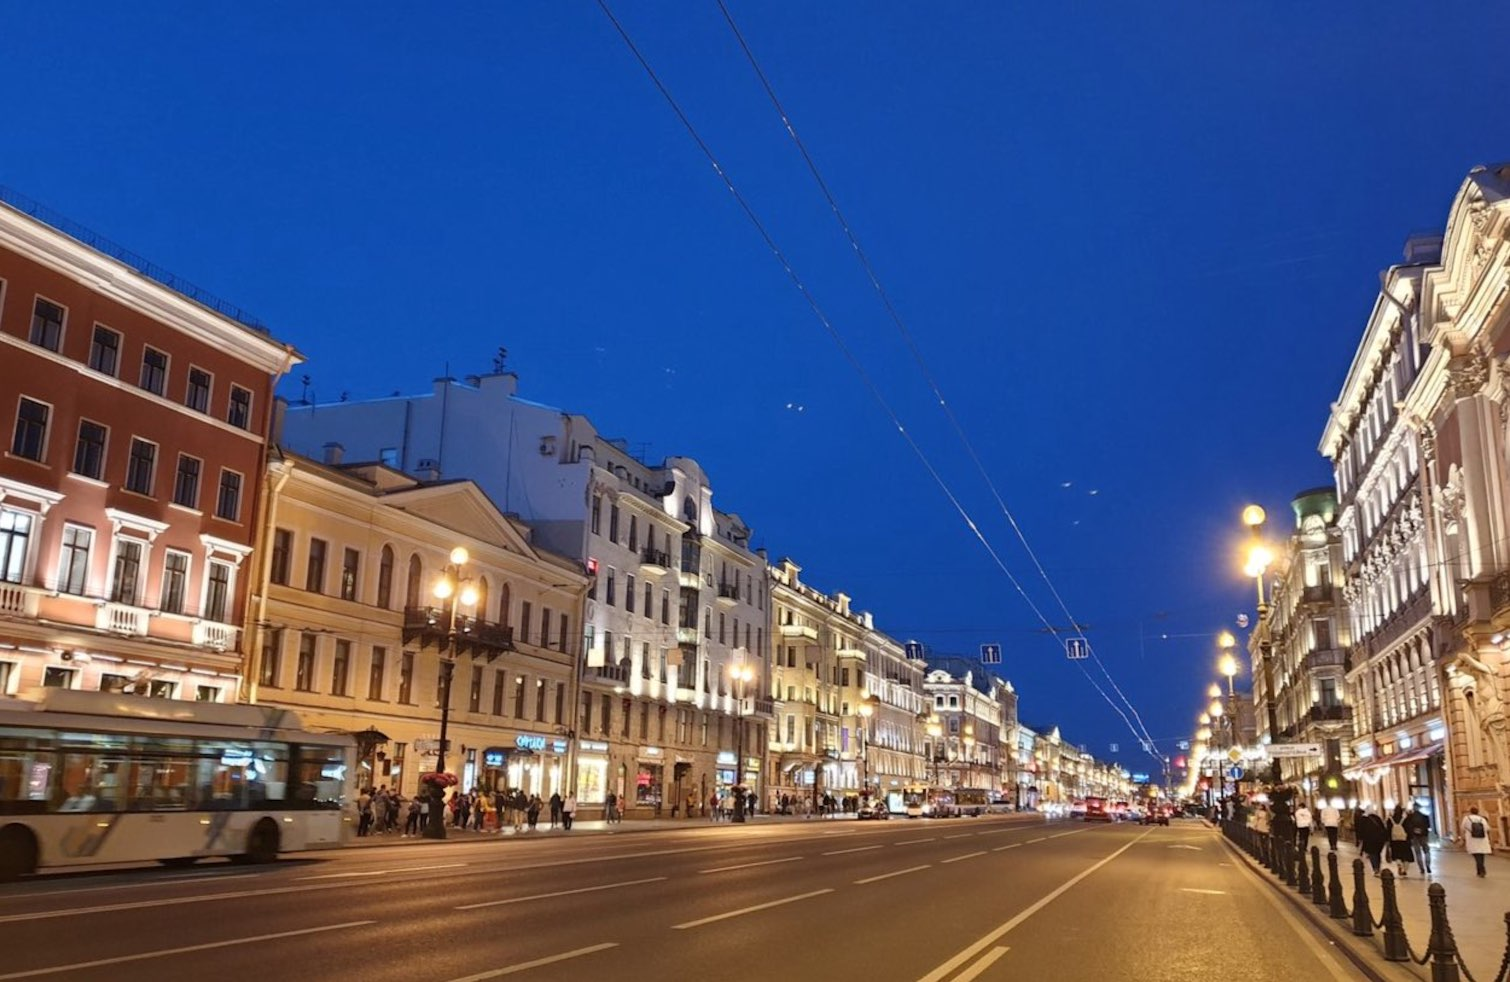 Nevsky Avenue in St. Petersburg at night 2